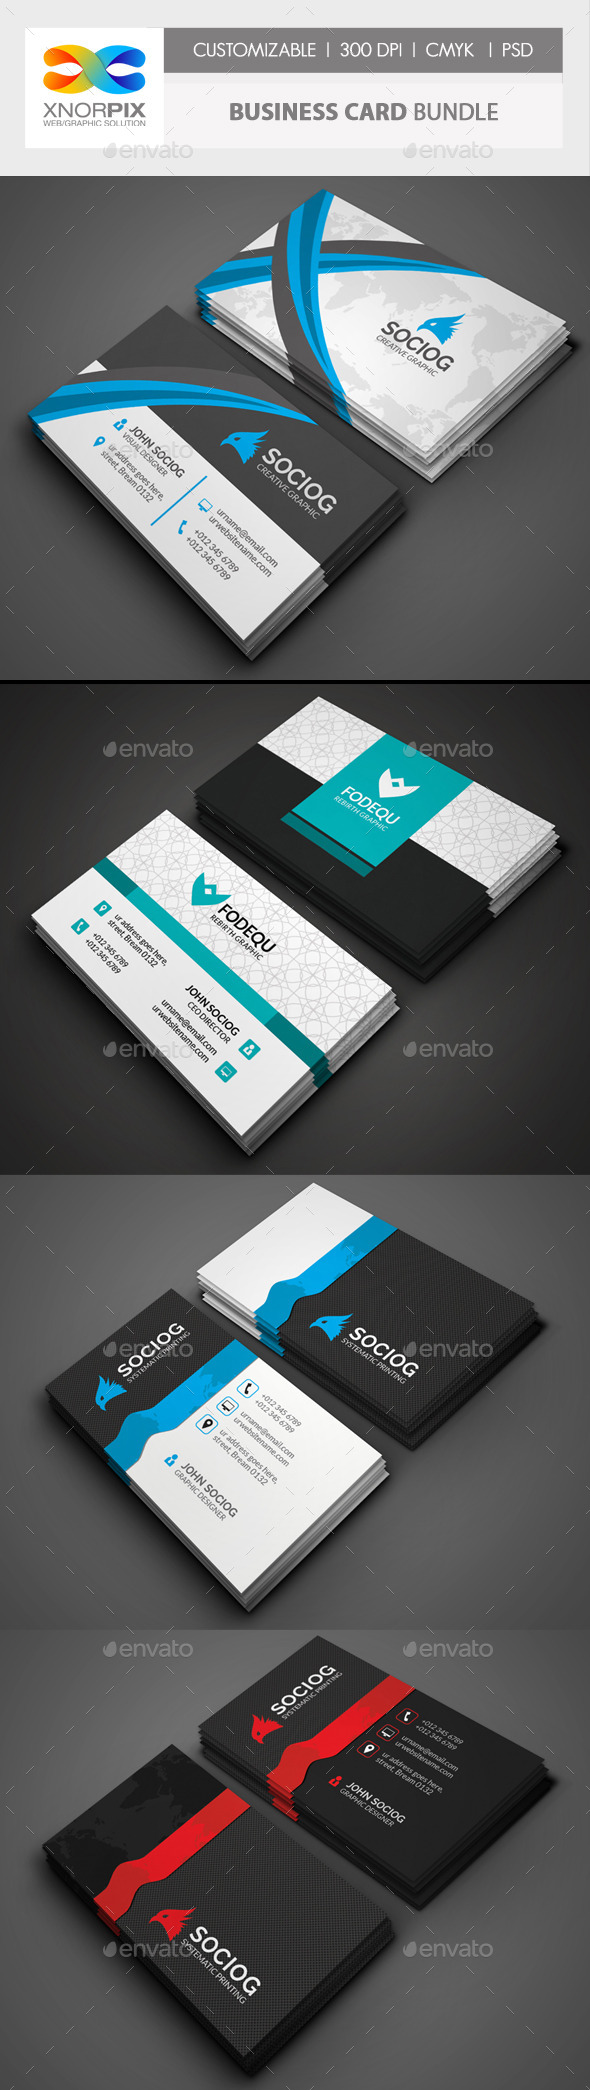 GraphicRiver Business Card Bundle 3 in 1-Vol 47 10232236